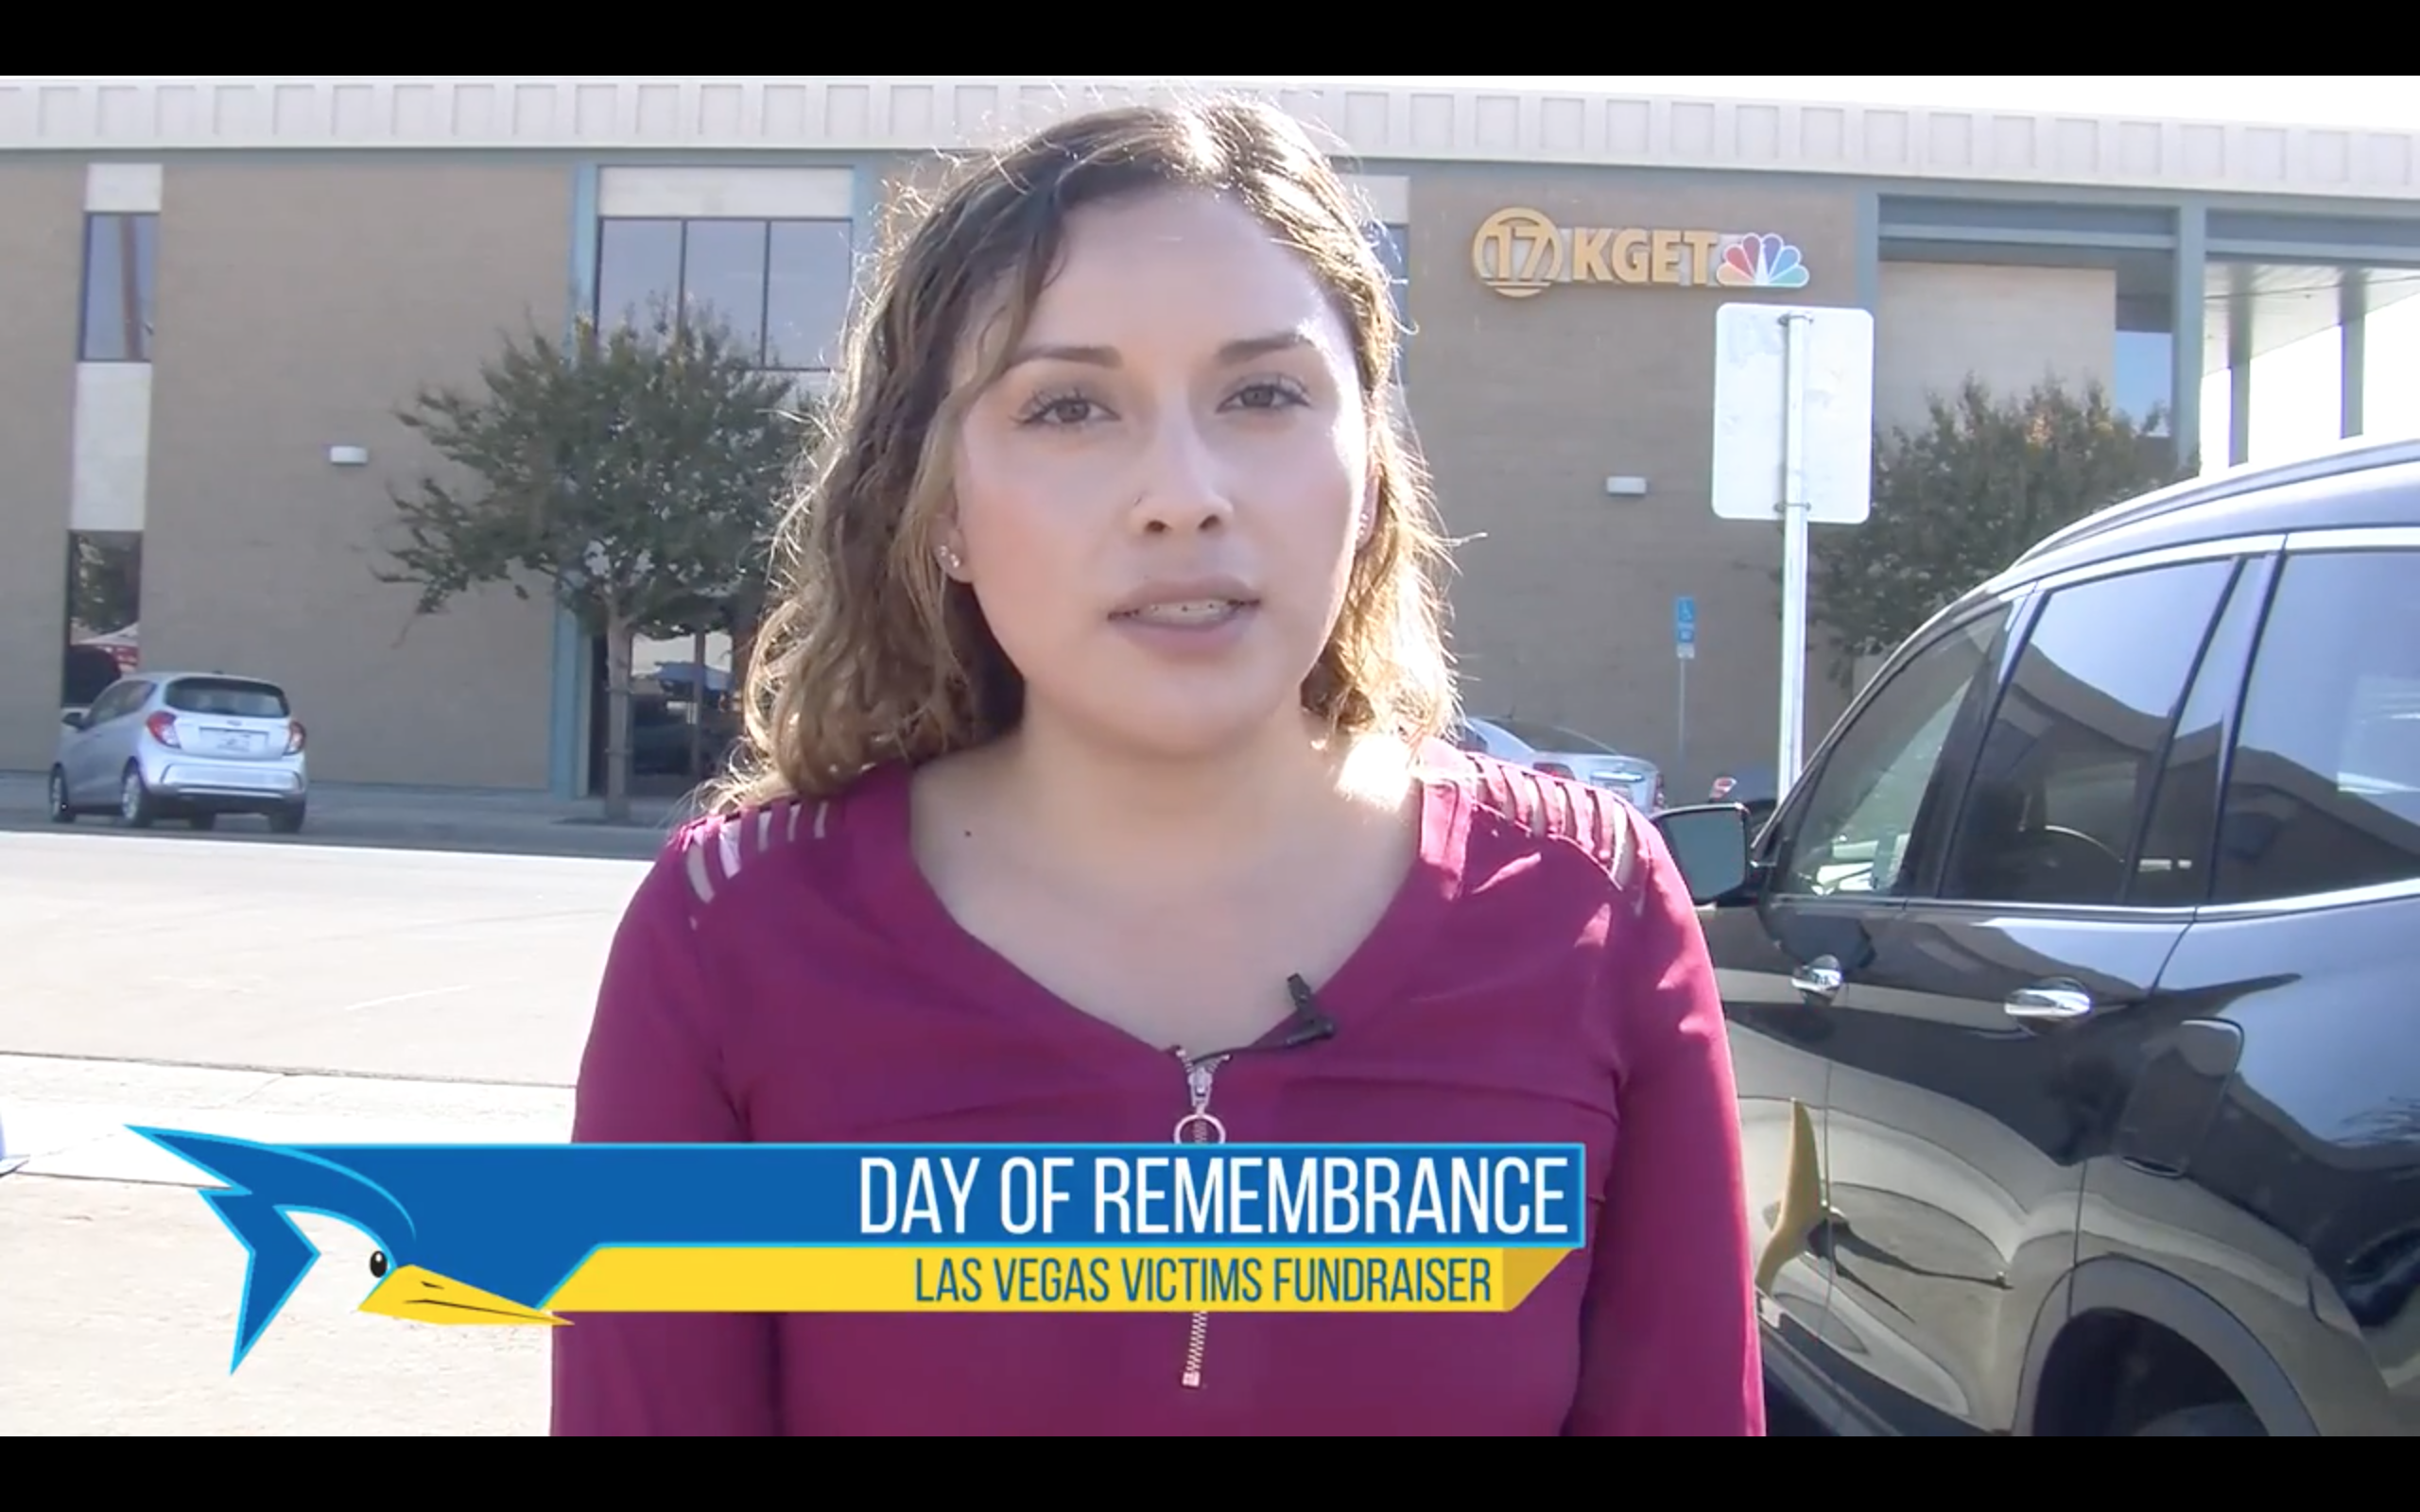 Kern County Day of Remembrance